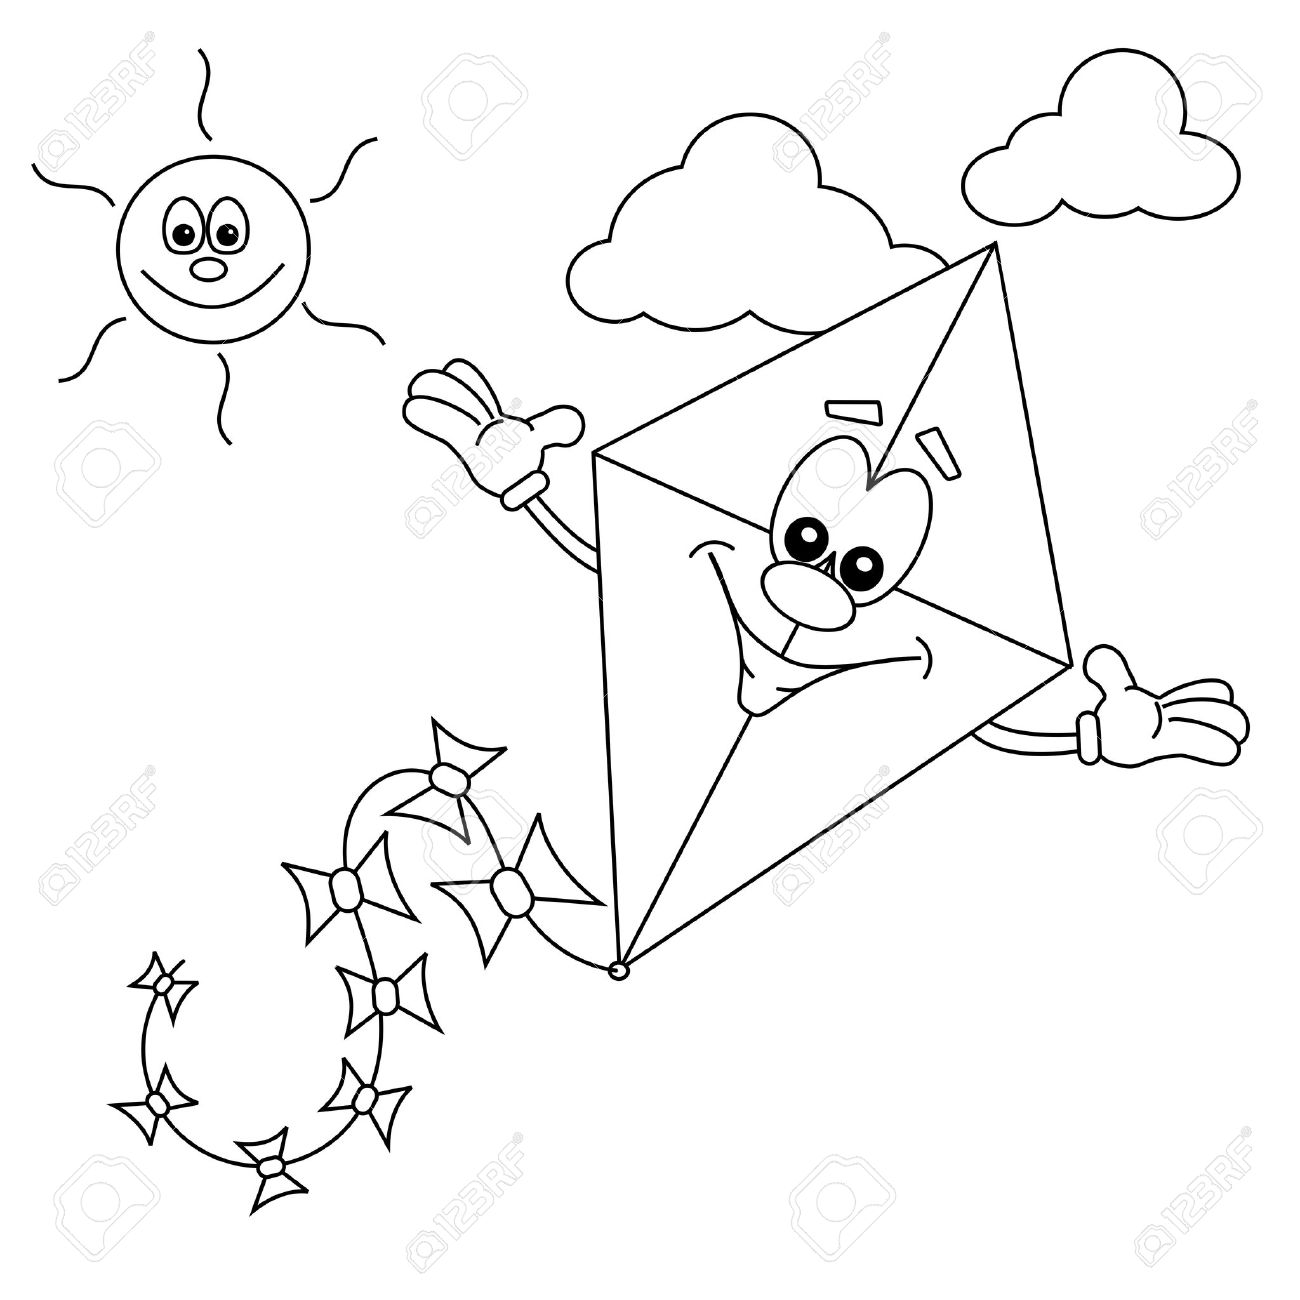 cartoon kite outline for colouring in book stock vector 14189006